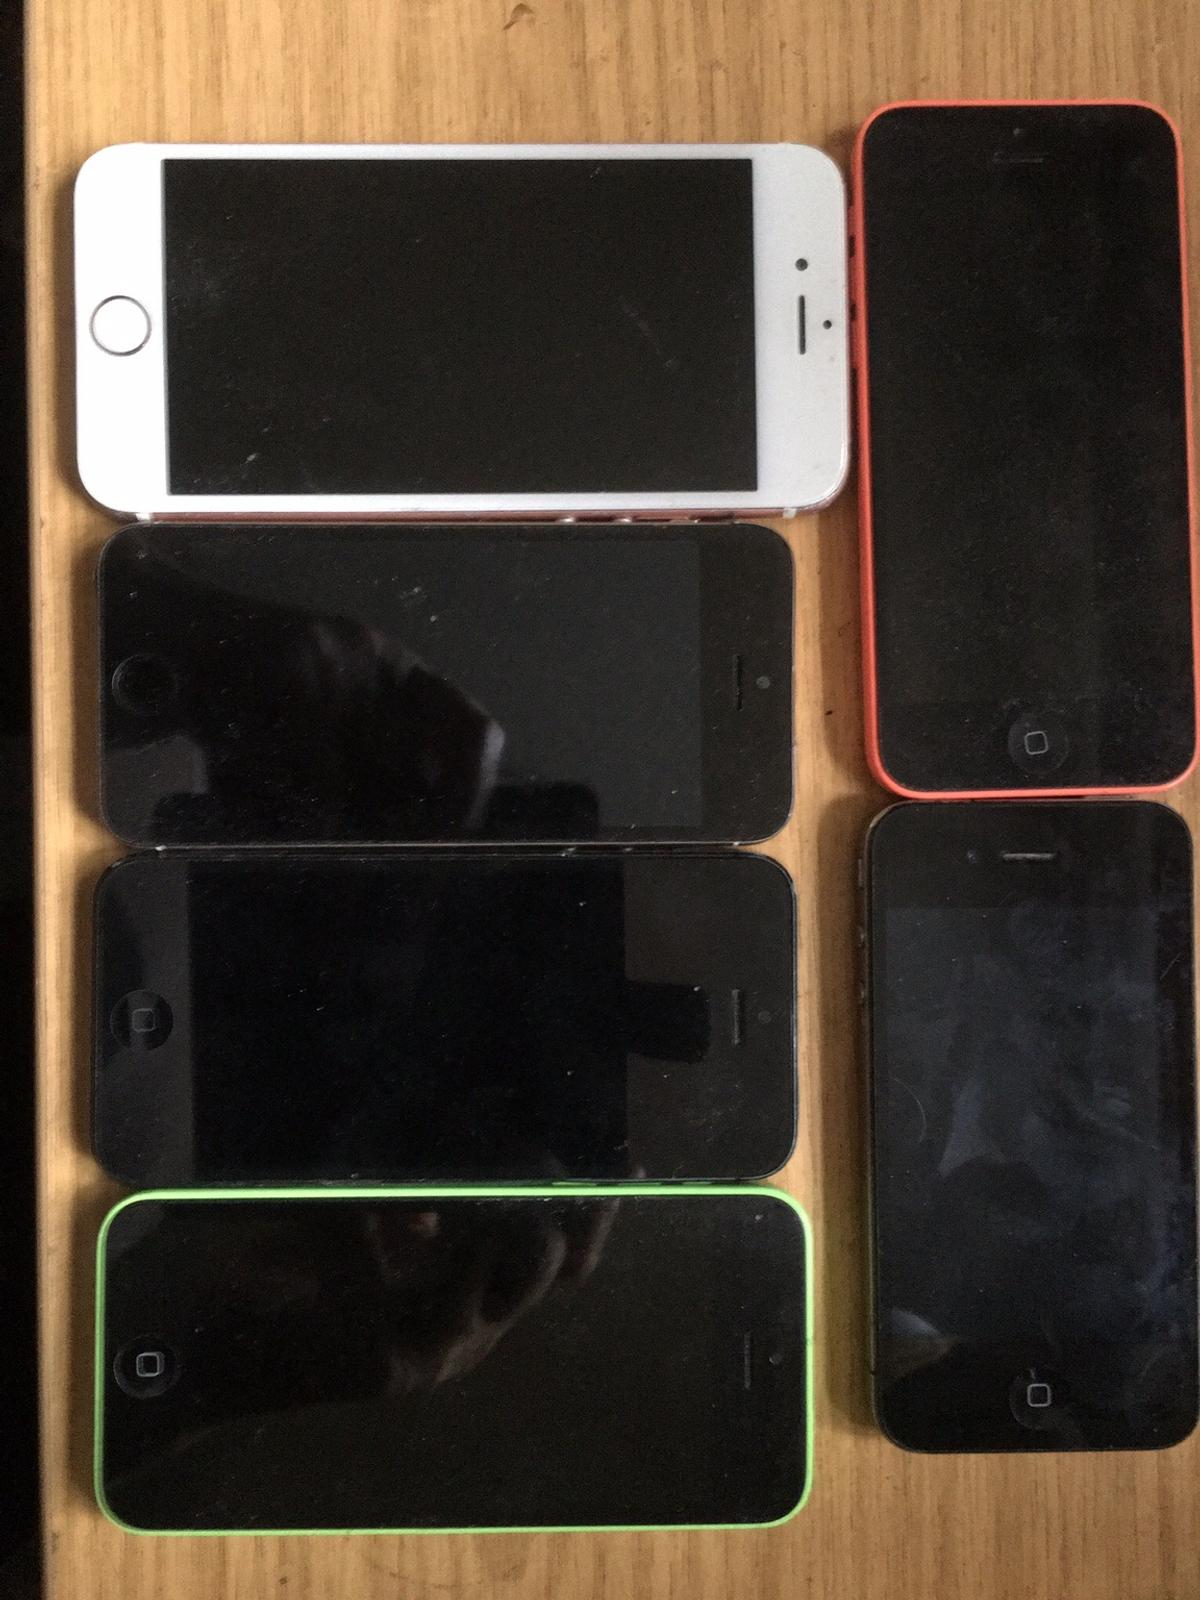 2 x iPhone 5's 2 x iPhone 5c's 1x iPhone 4 1 x iPhone 6 for spares or repair some iPhone locked some will not boot up all screens no cracks